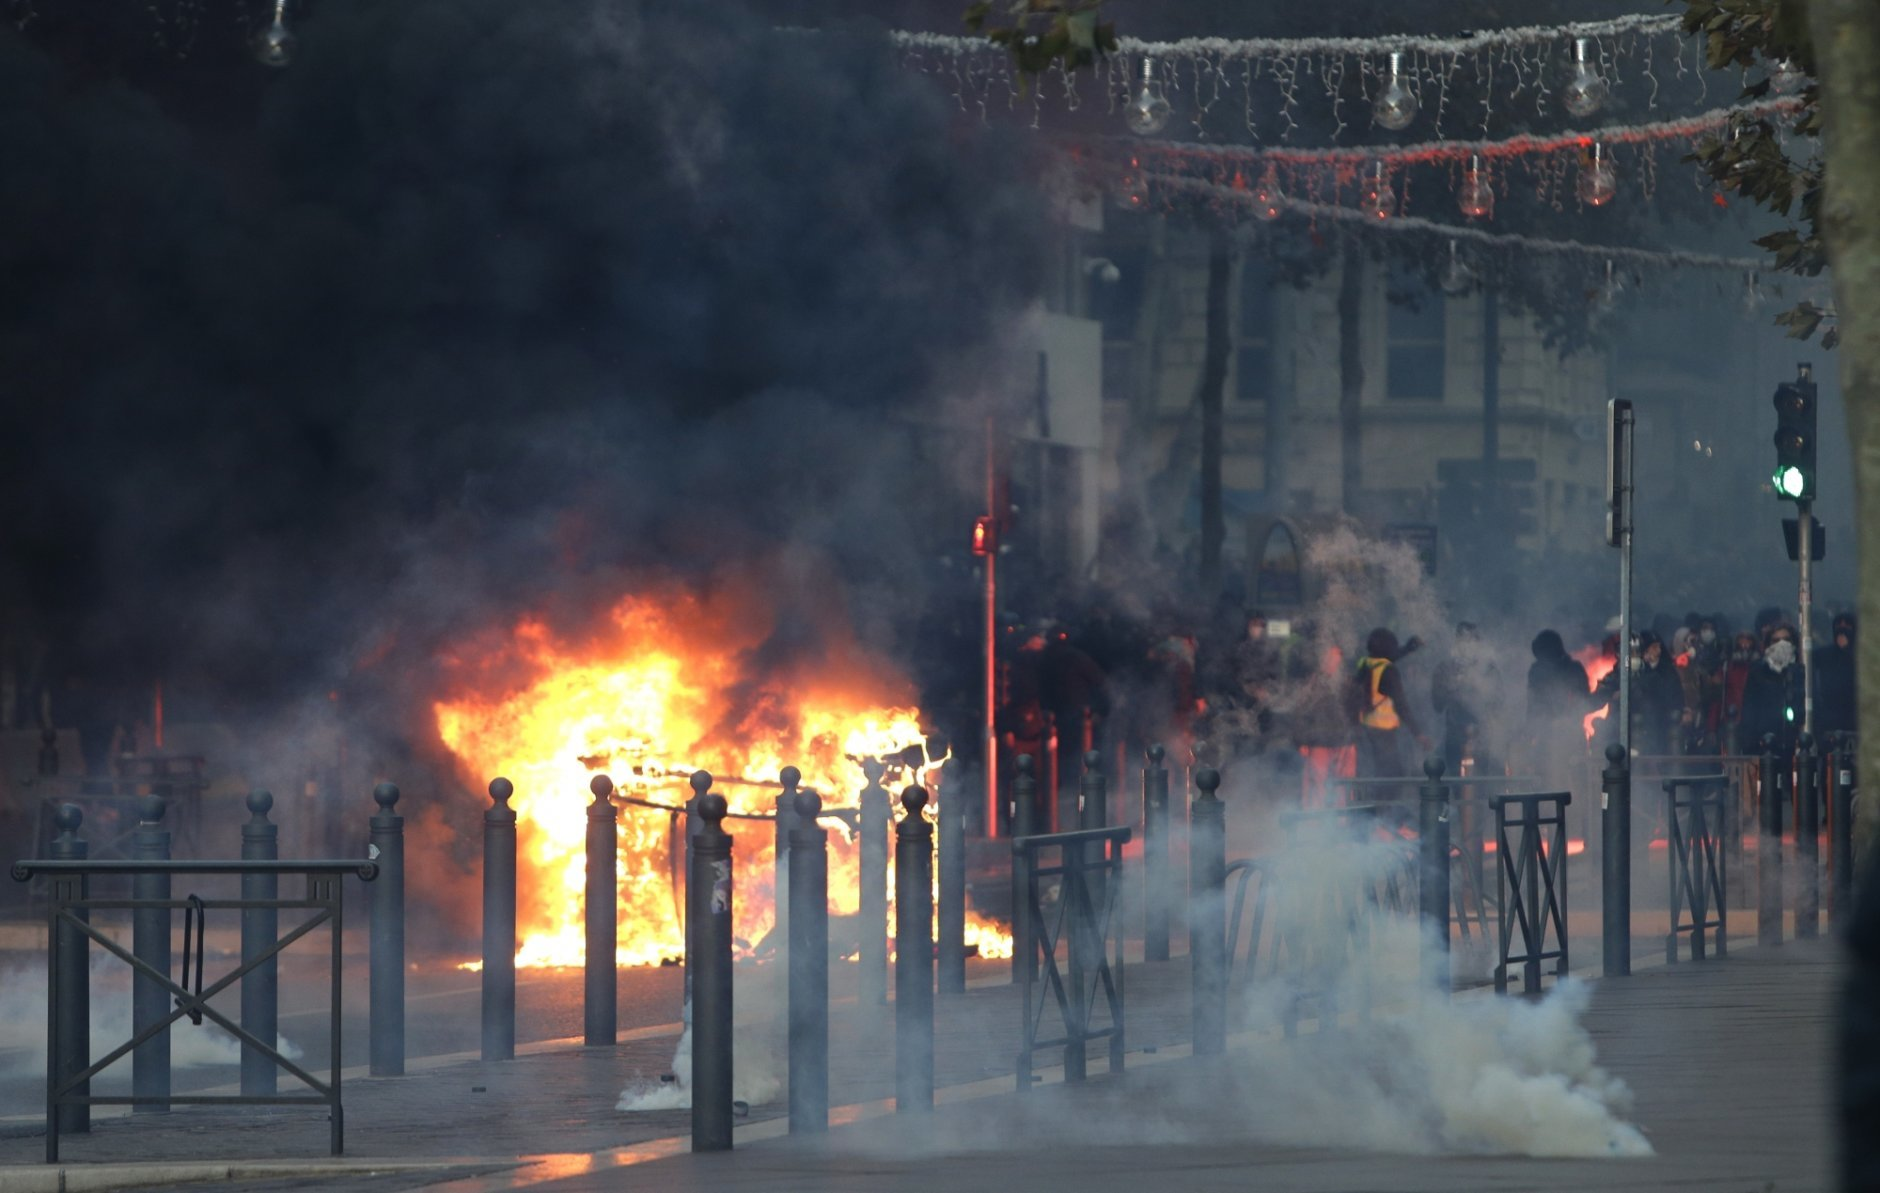 Demonstrators stand behind a burning car during clashes, Saturday, Dec. 8, 2018 in Marseille, southern France. French riot police fired tear gas and water cannon in Paris on Saturday, trying to stop thousands of yellow-vested protesters from converging on the presidential palace to express their anger at high taxes and French President Emmanuel Macron. (AP Photo/Claude Paris)